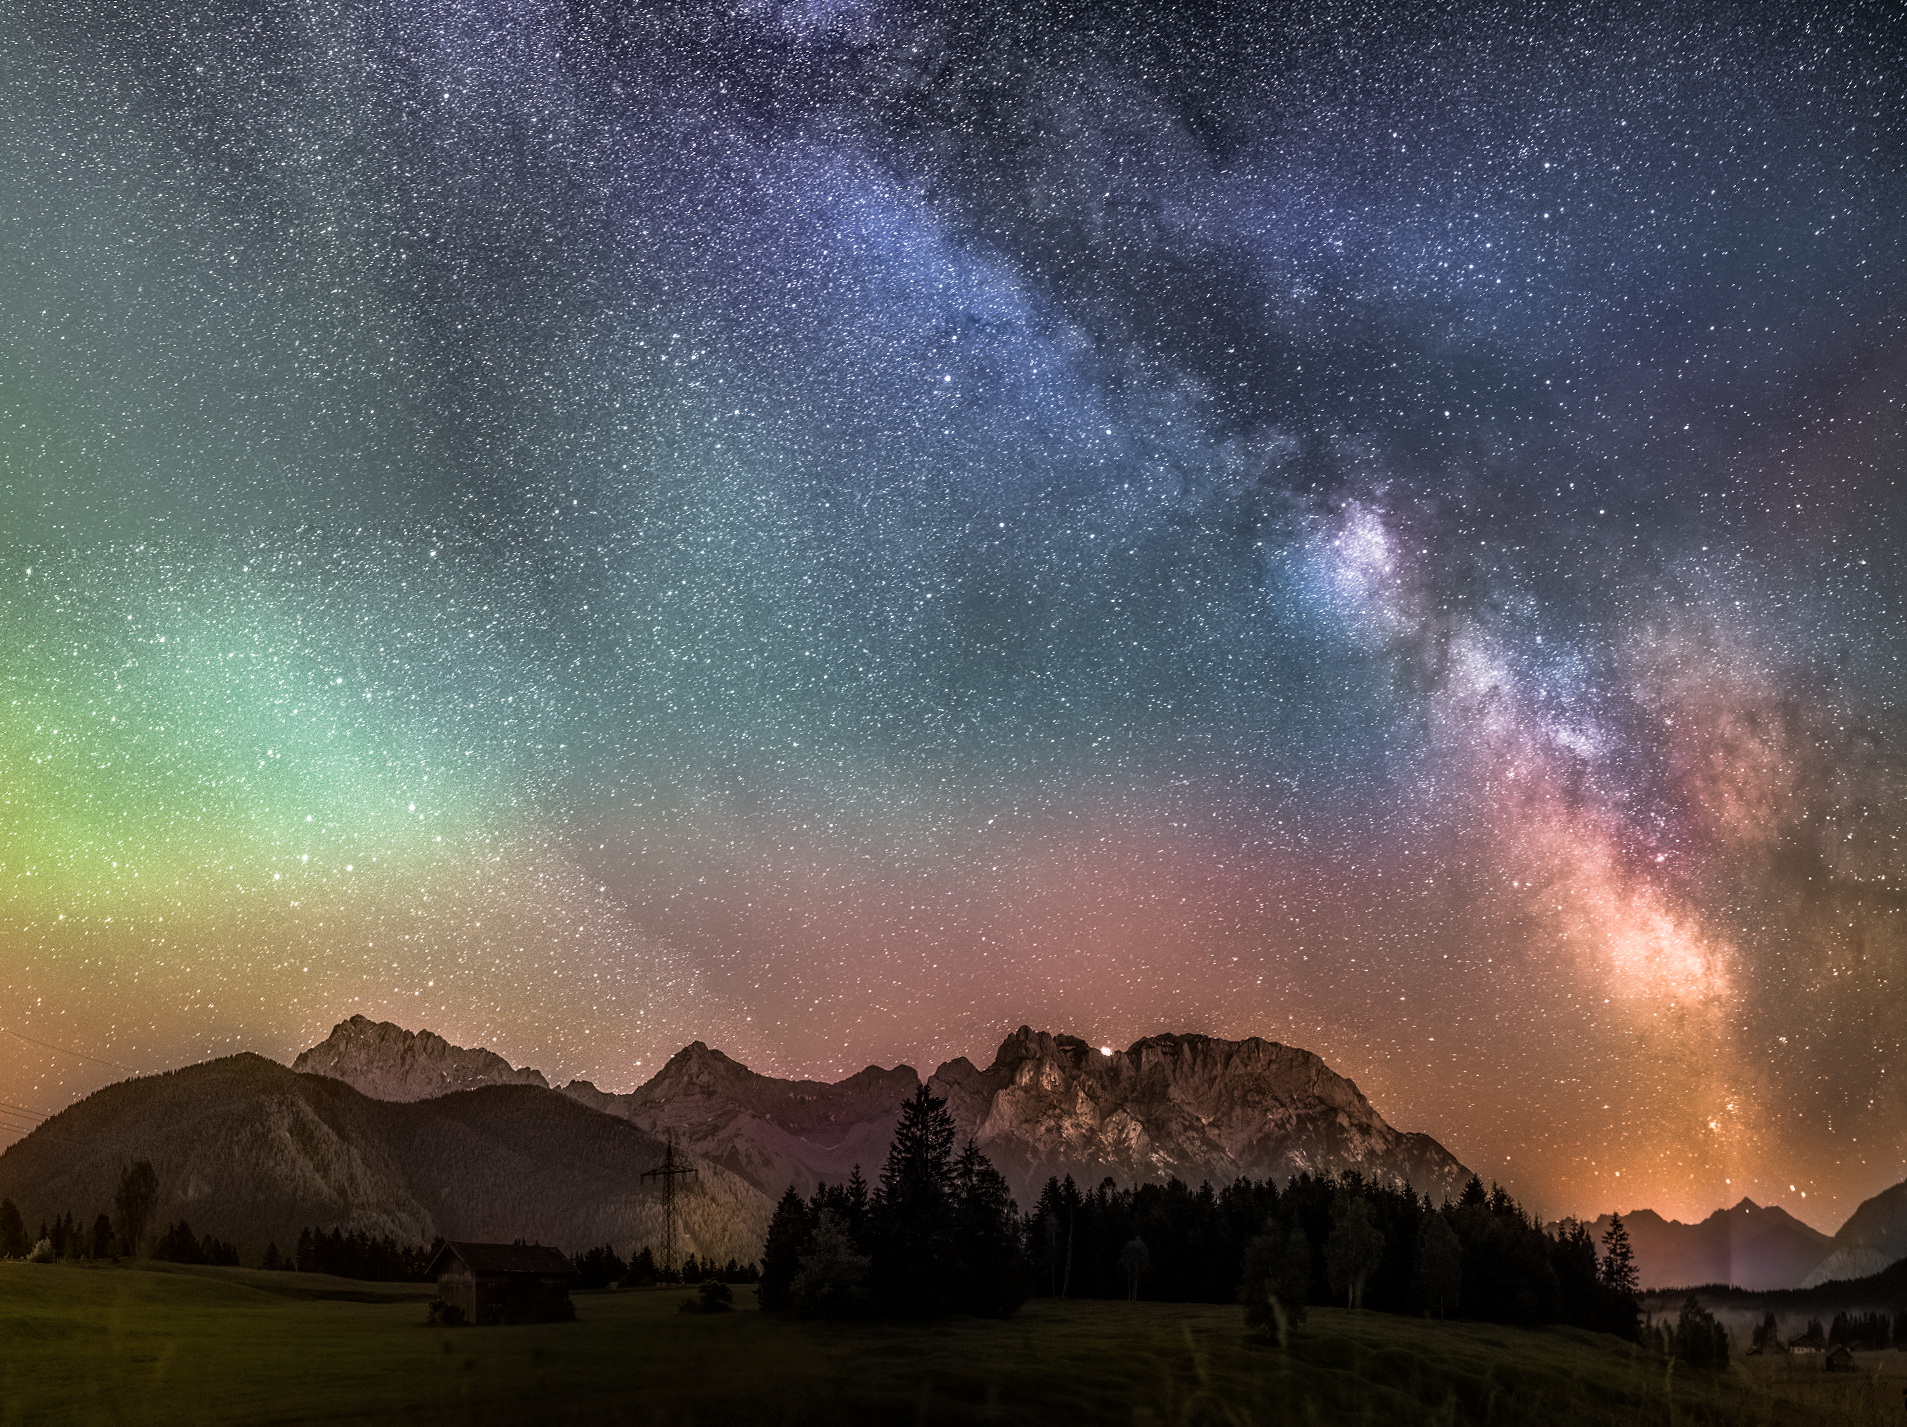 Airglow in Mittenwald, Germany